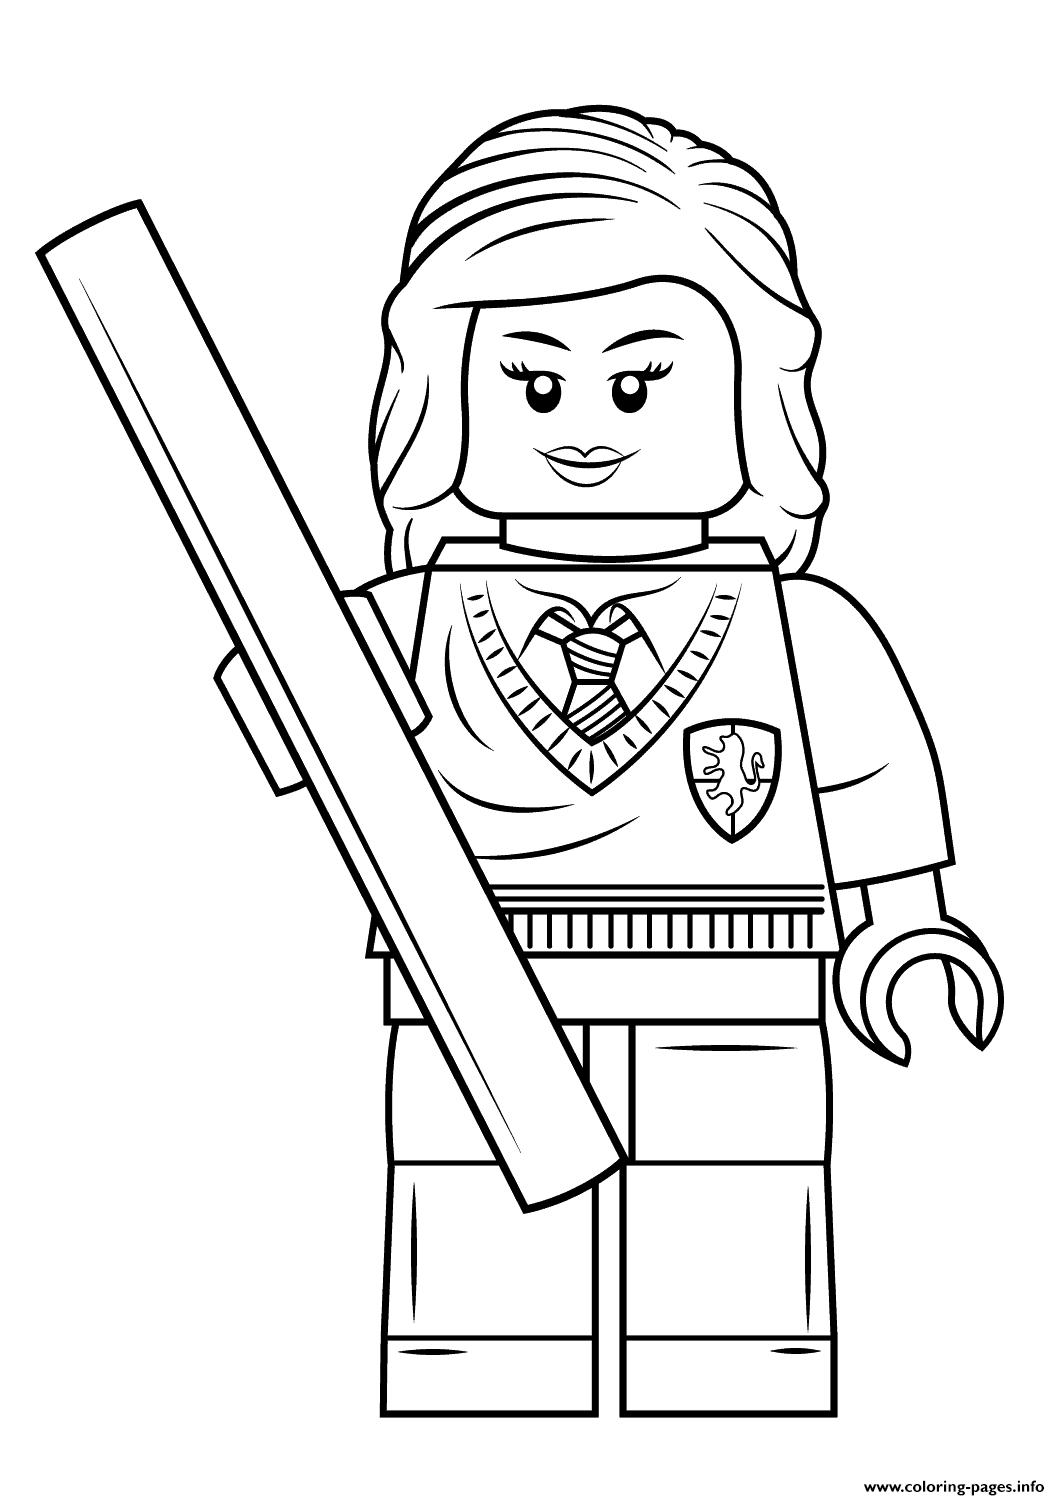 harry potter lego coloring pages lego severus snape harry potter coloring pages toys and lego harry coloring pages potter